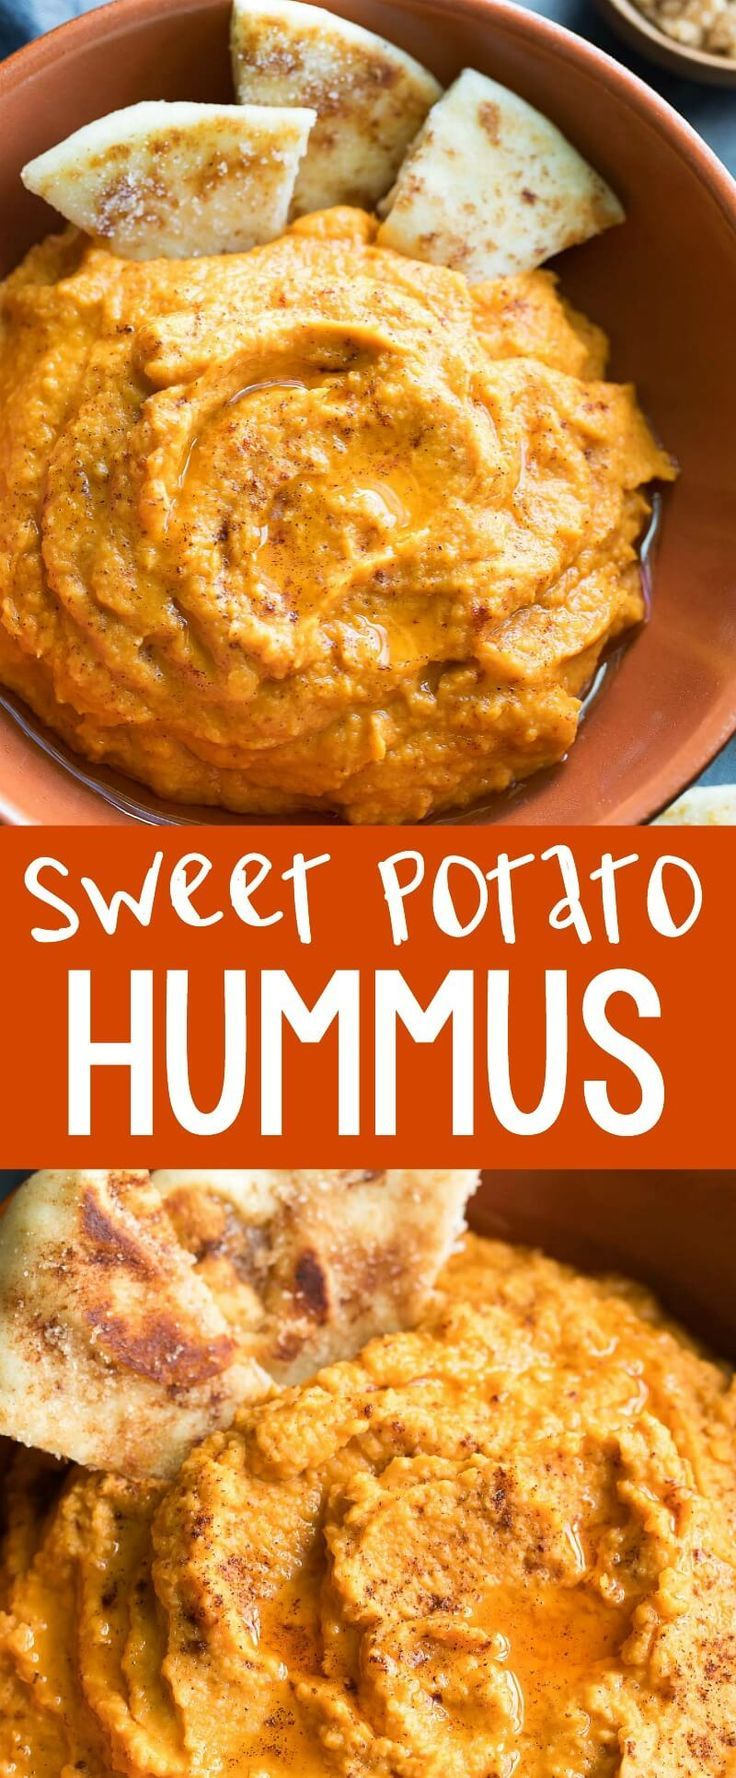 Sweet Potato Hummus with Cinnamon Sugar Flatbread Sweet Potato Hummus kissed with pumpkin spice seasoning and served with the most amazing cinnamon sugar flatbread dippers. We're pretty excited to eat this sweet and savory hummus all Fall long!